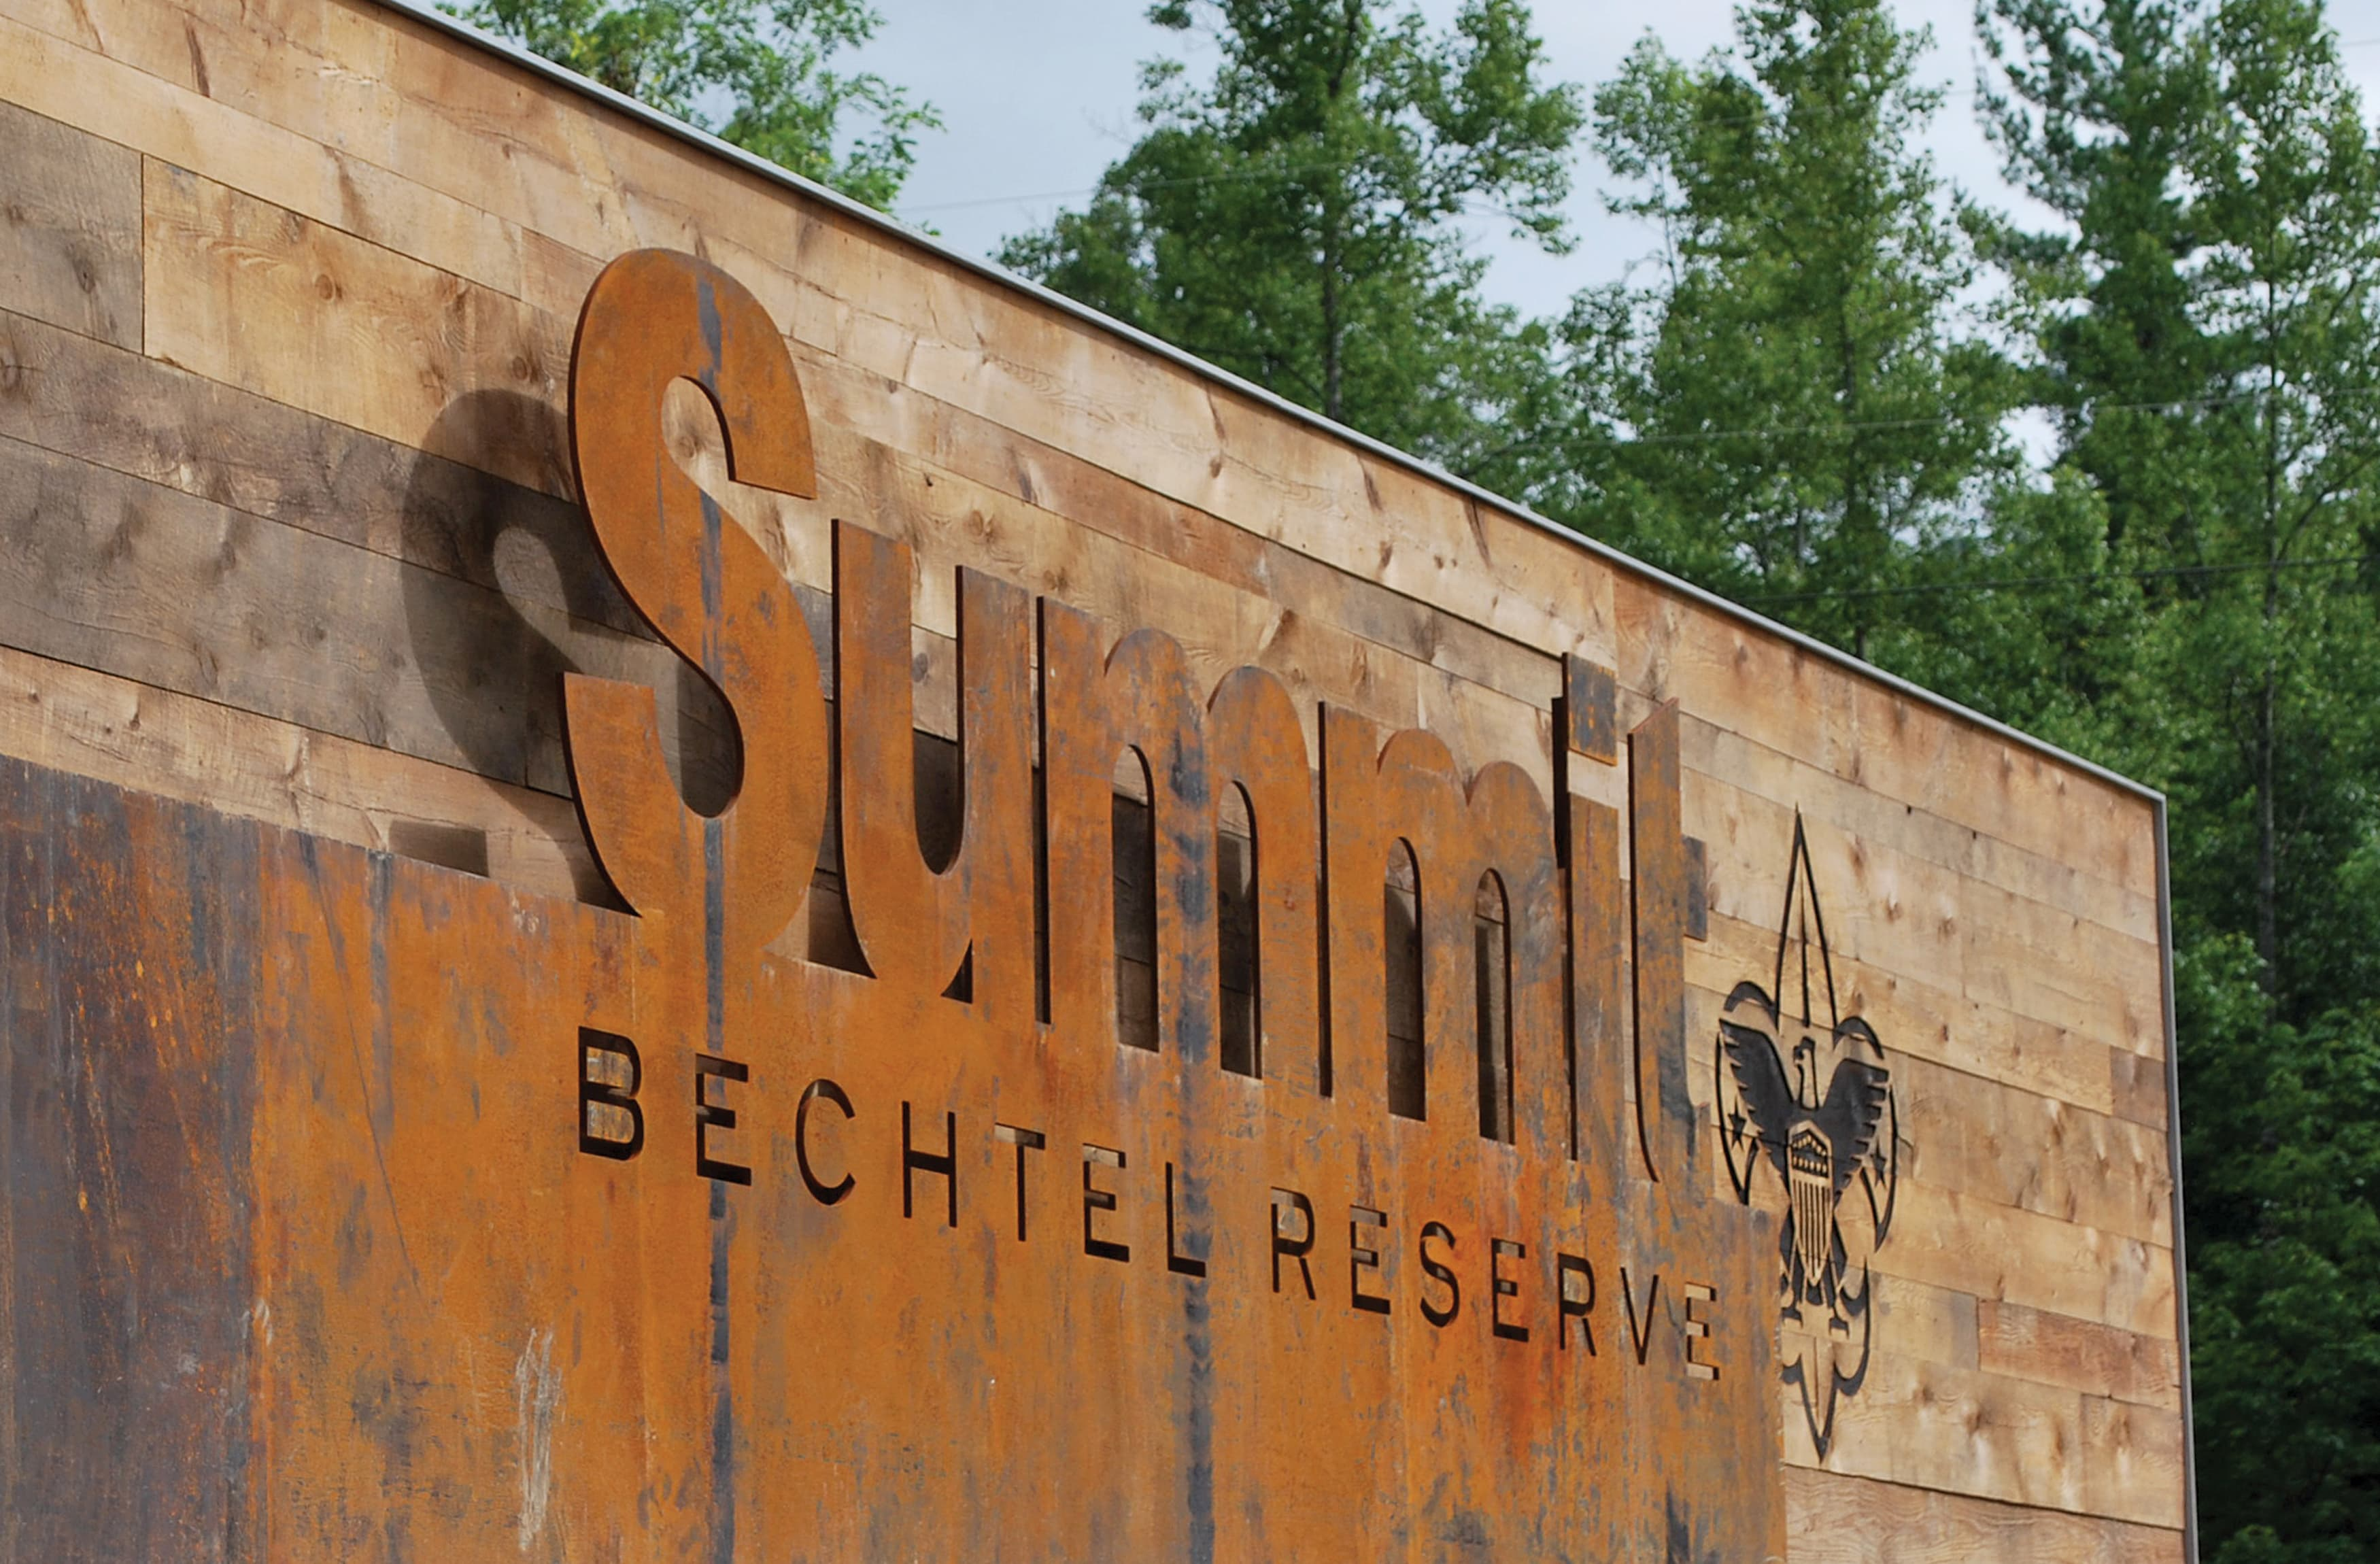 Boy Scouts of America, The Summit Bechtel Reserve corten project identity monument